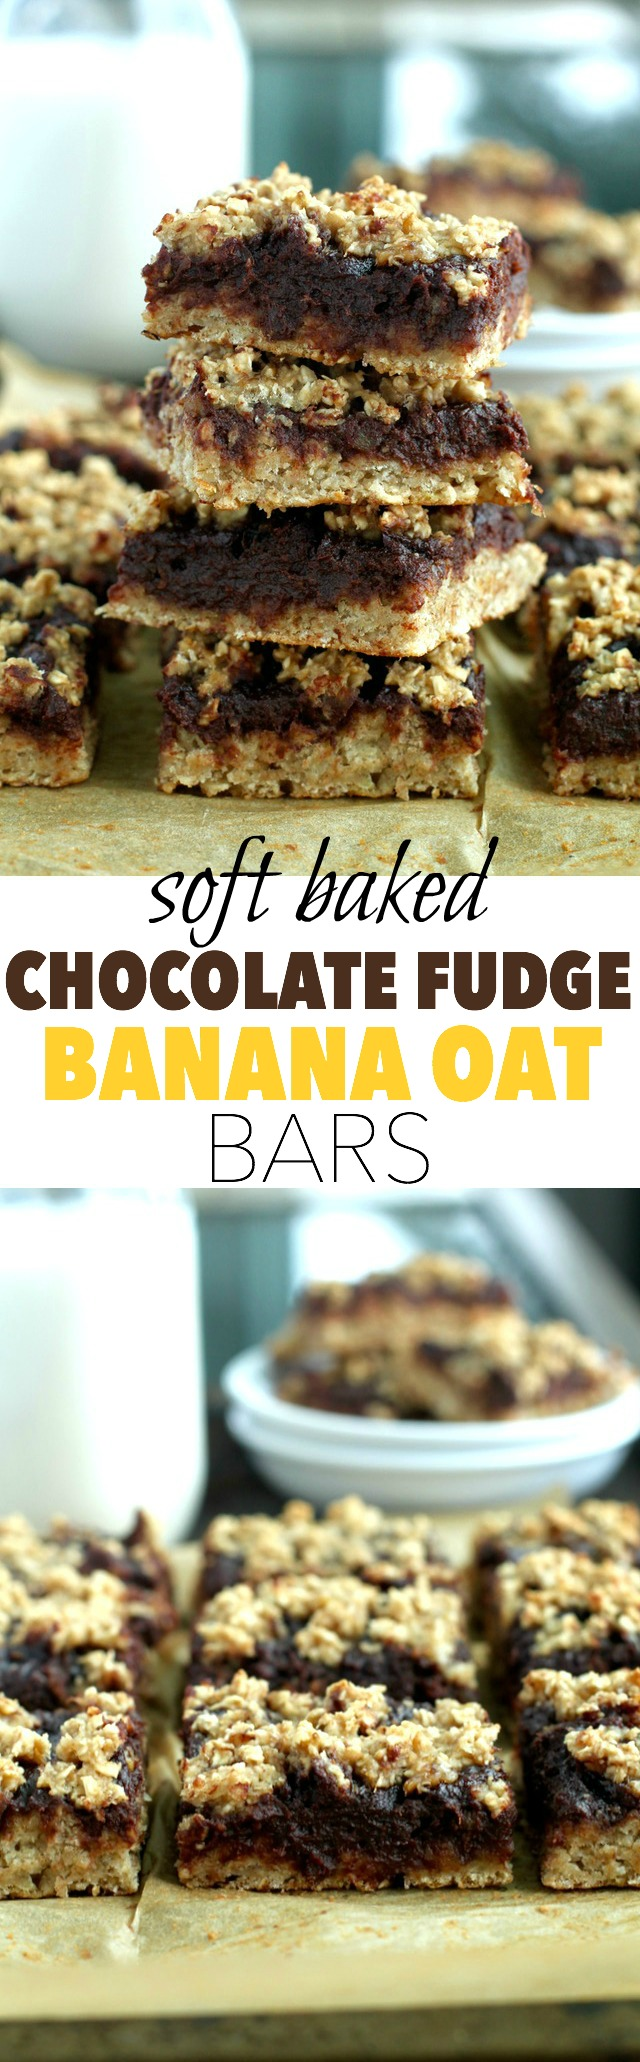 Chocolate Fudge Banana Oat Bars -- you'd never believe that these soft baked oat bars are vegan, gluten-free, refined sugar-free, and made without any butter or oil! || runningwithspoons.com #vegan #snack #healthy #chocolate